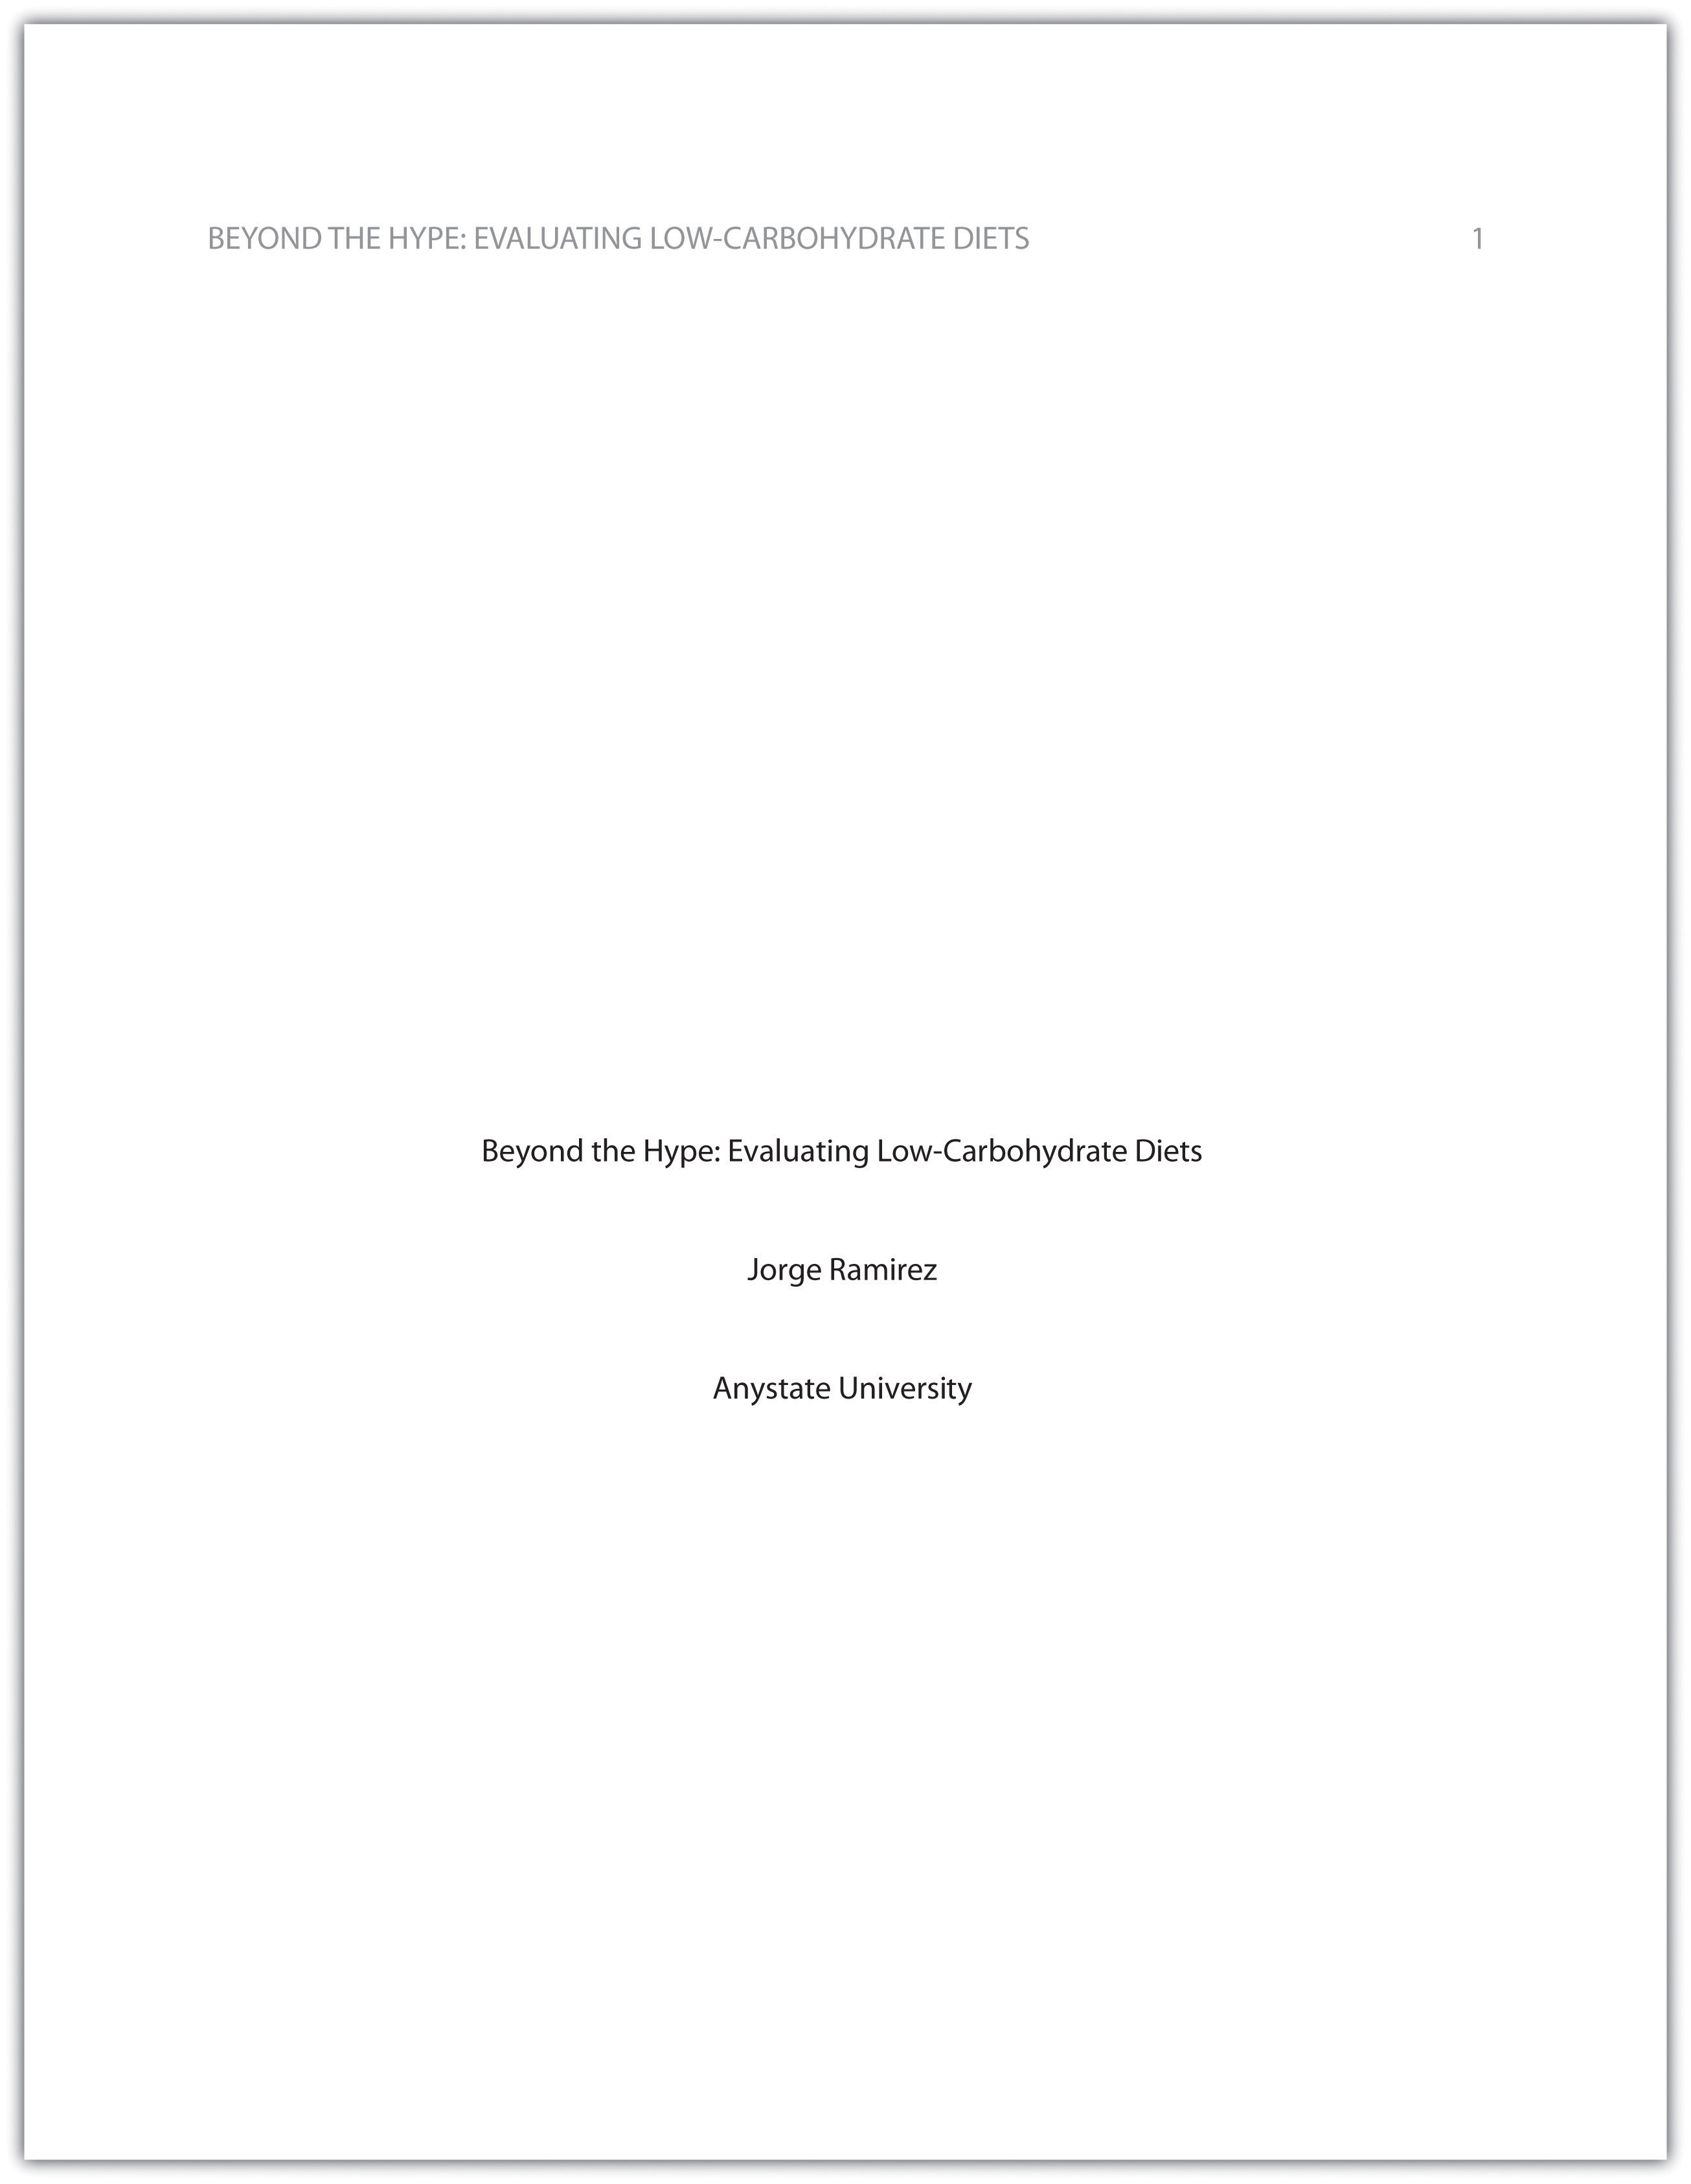 001 Research Paper Cover Page For Apa Style Dreaded Of Term Template Format Full